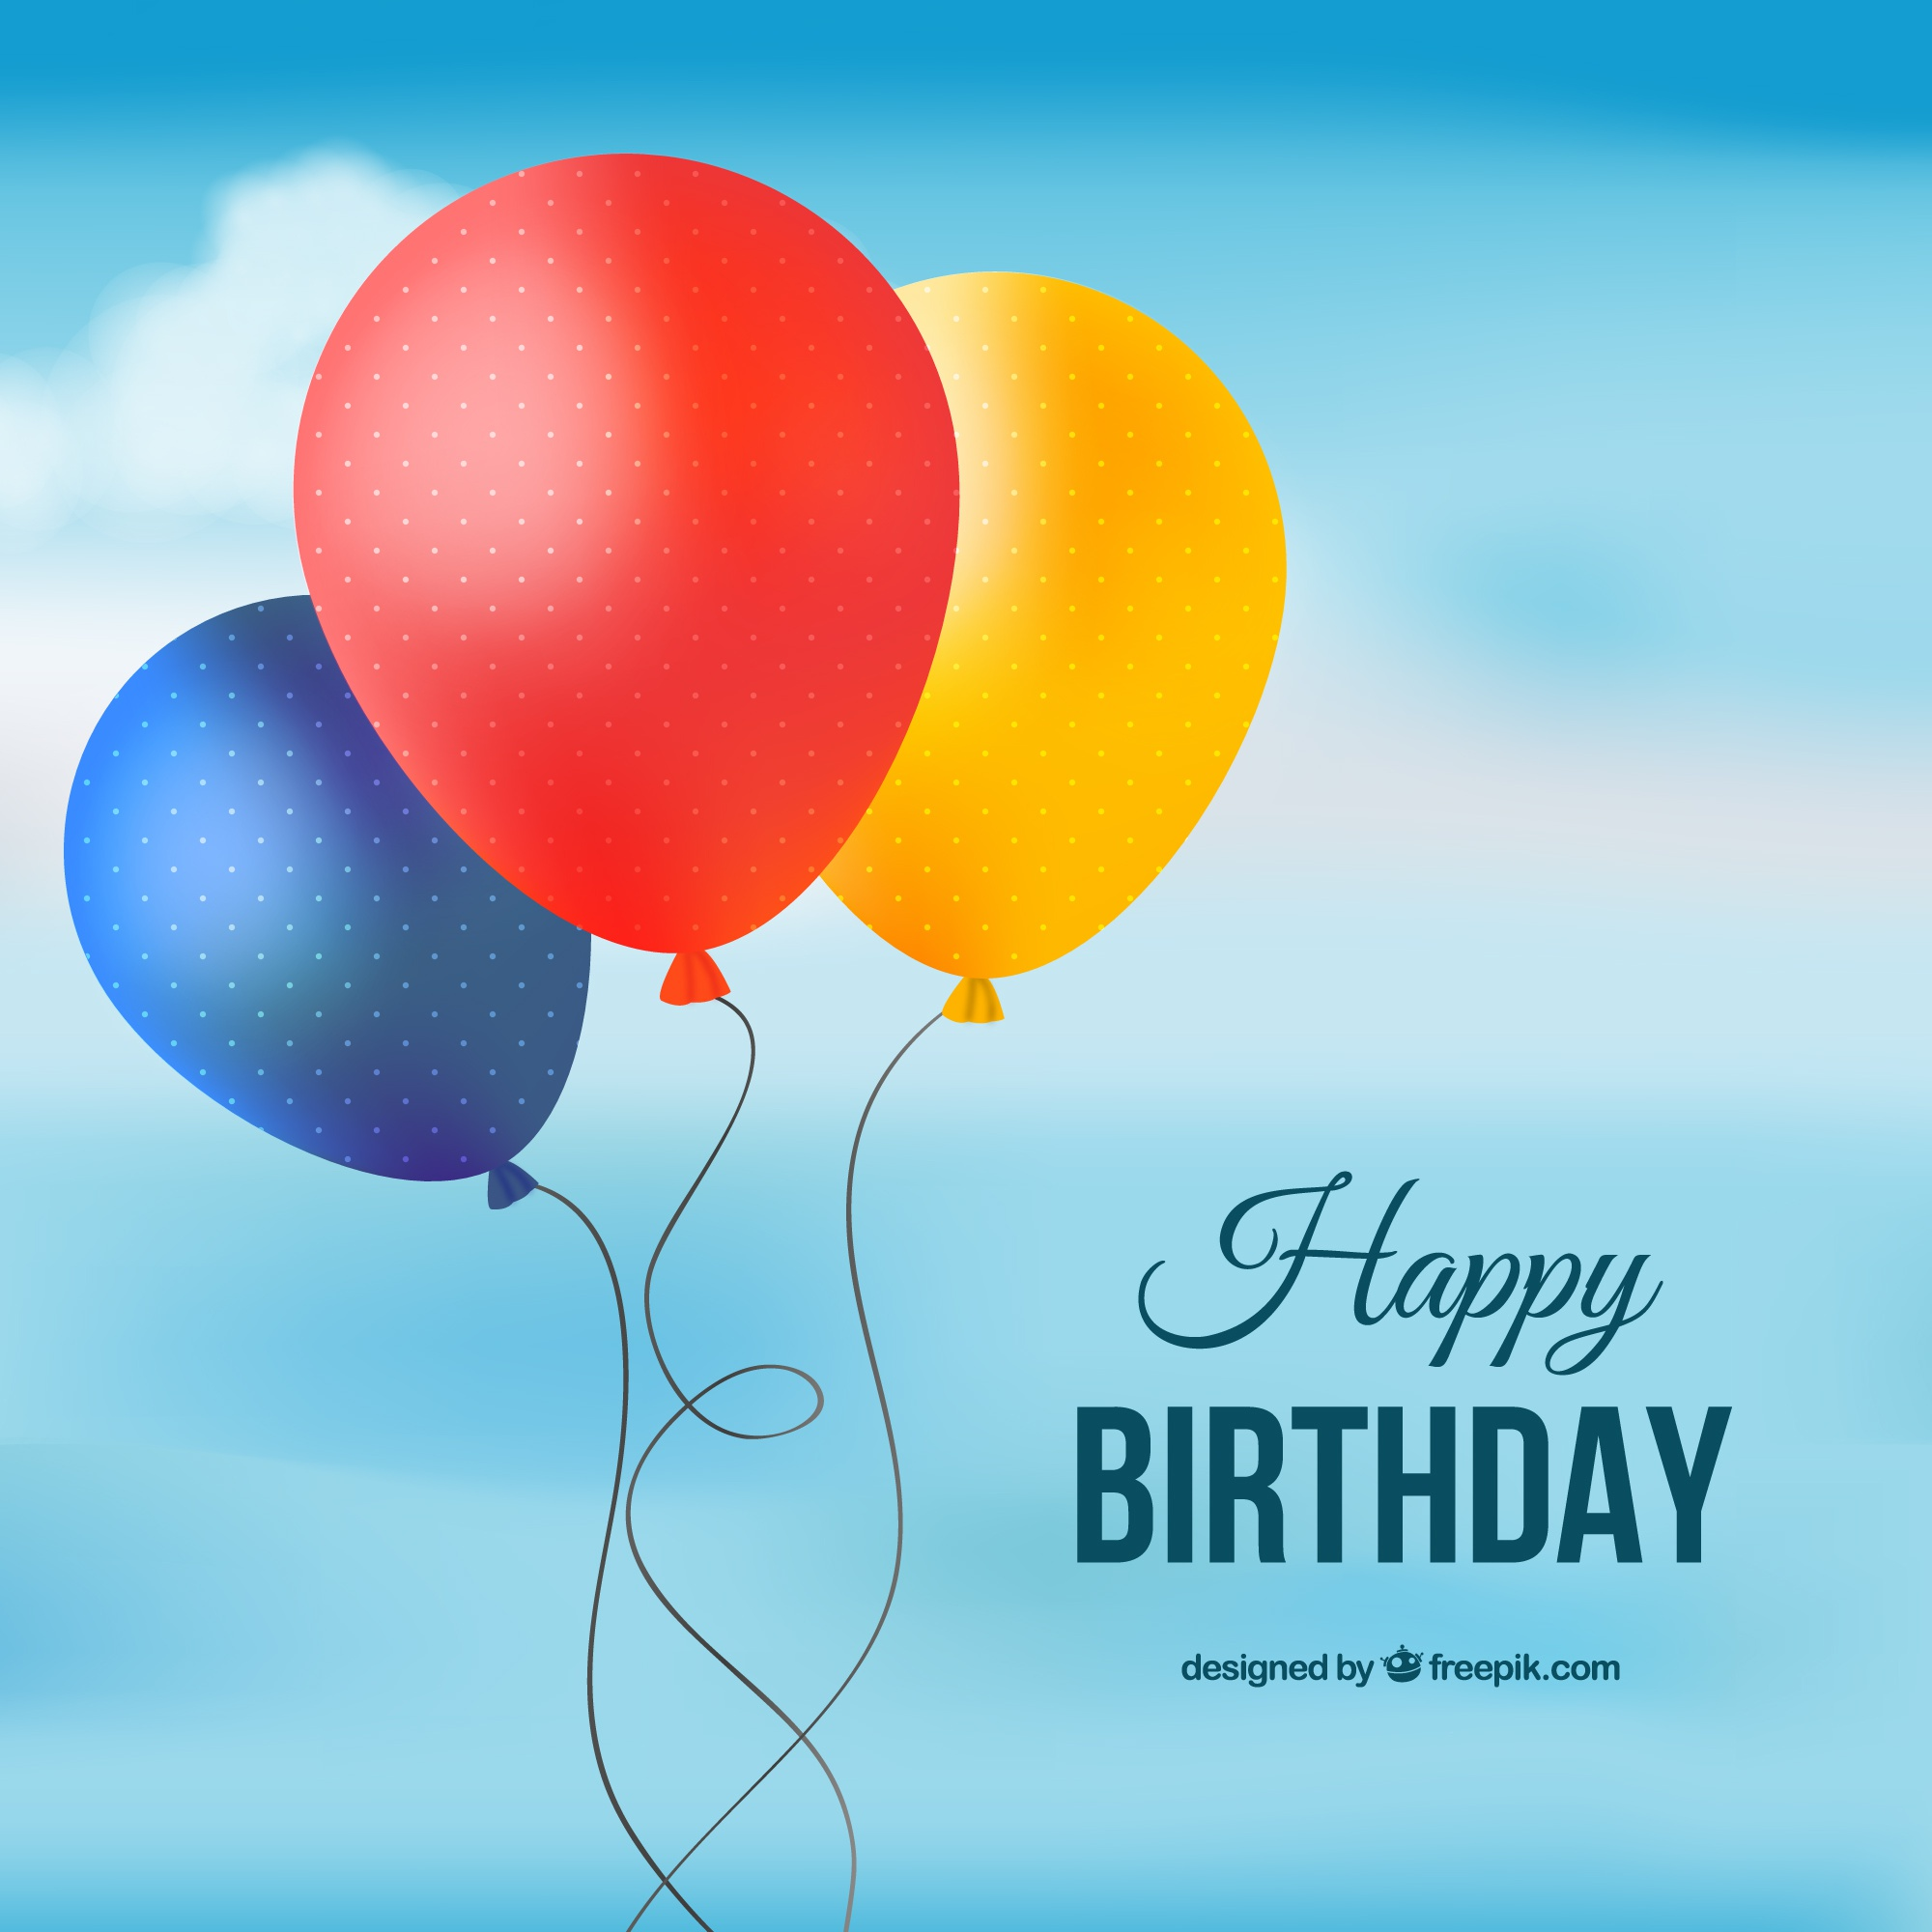 Happy birthday card with colored balloons